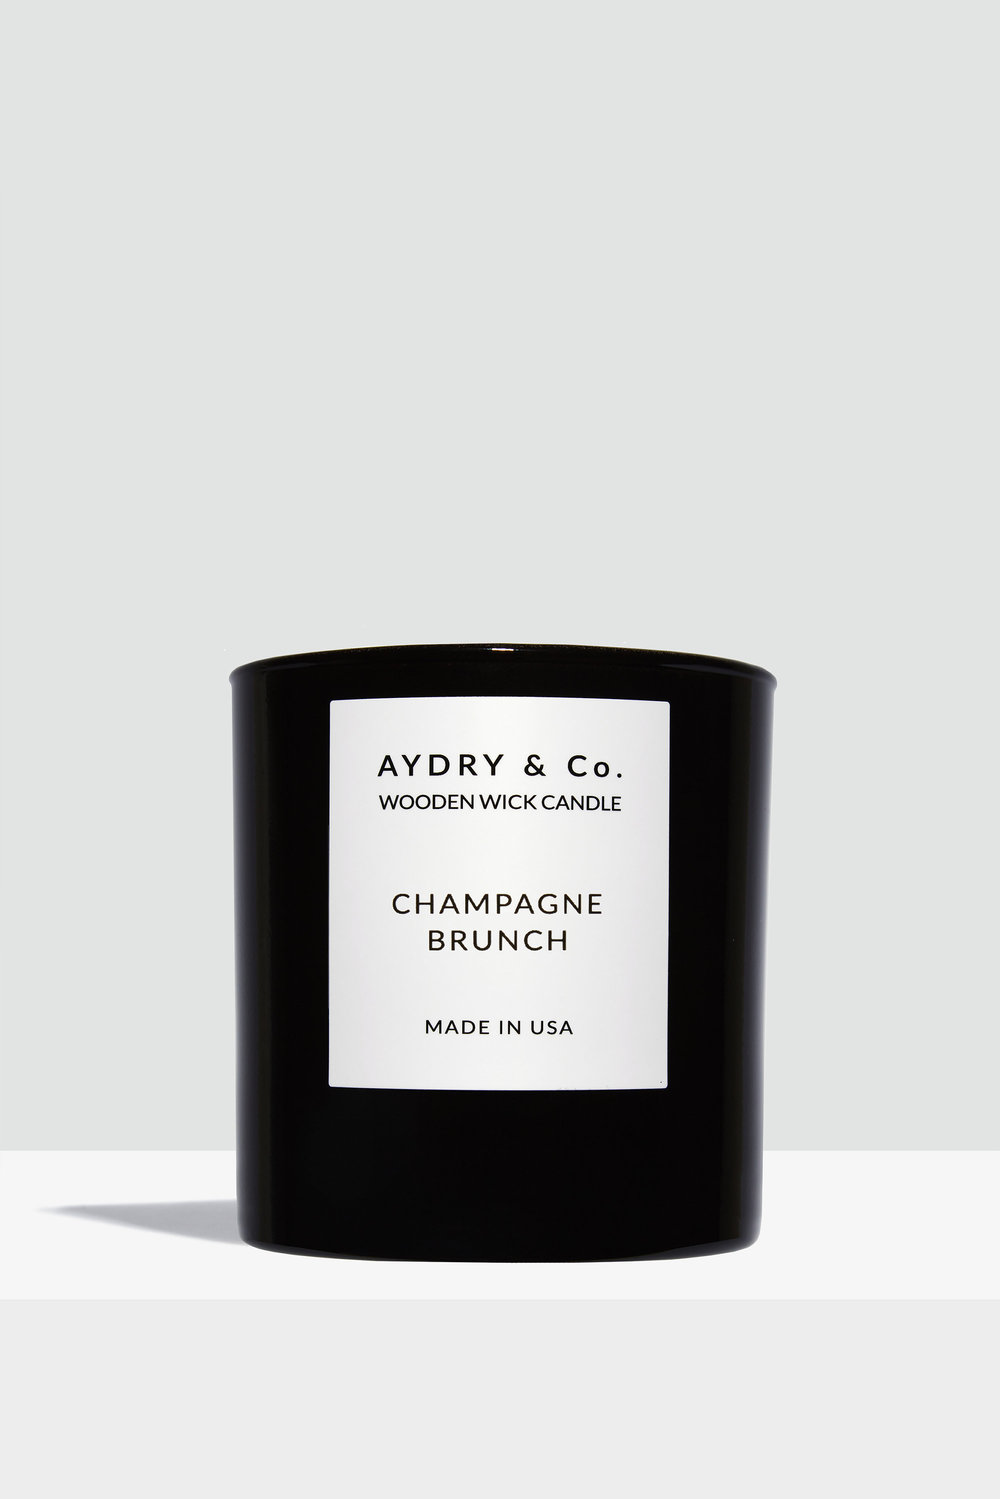 Champagne Brunch Wooden Wick Candle -